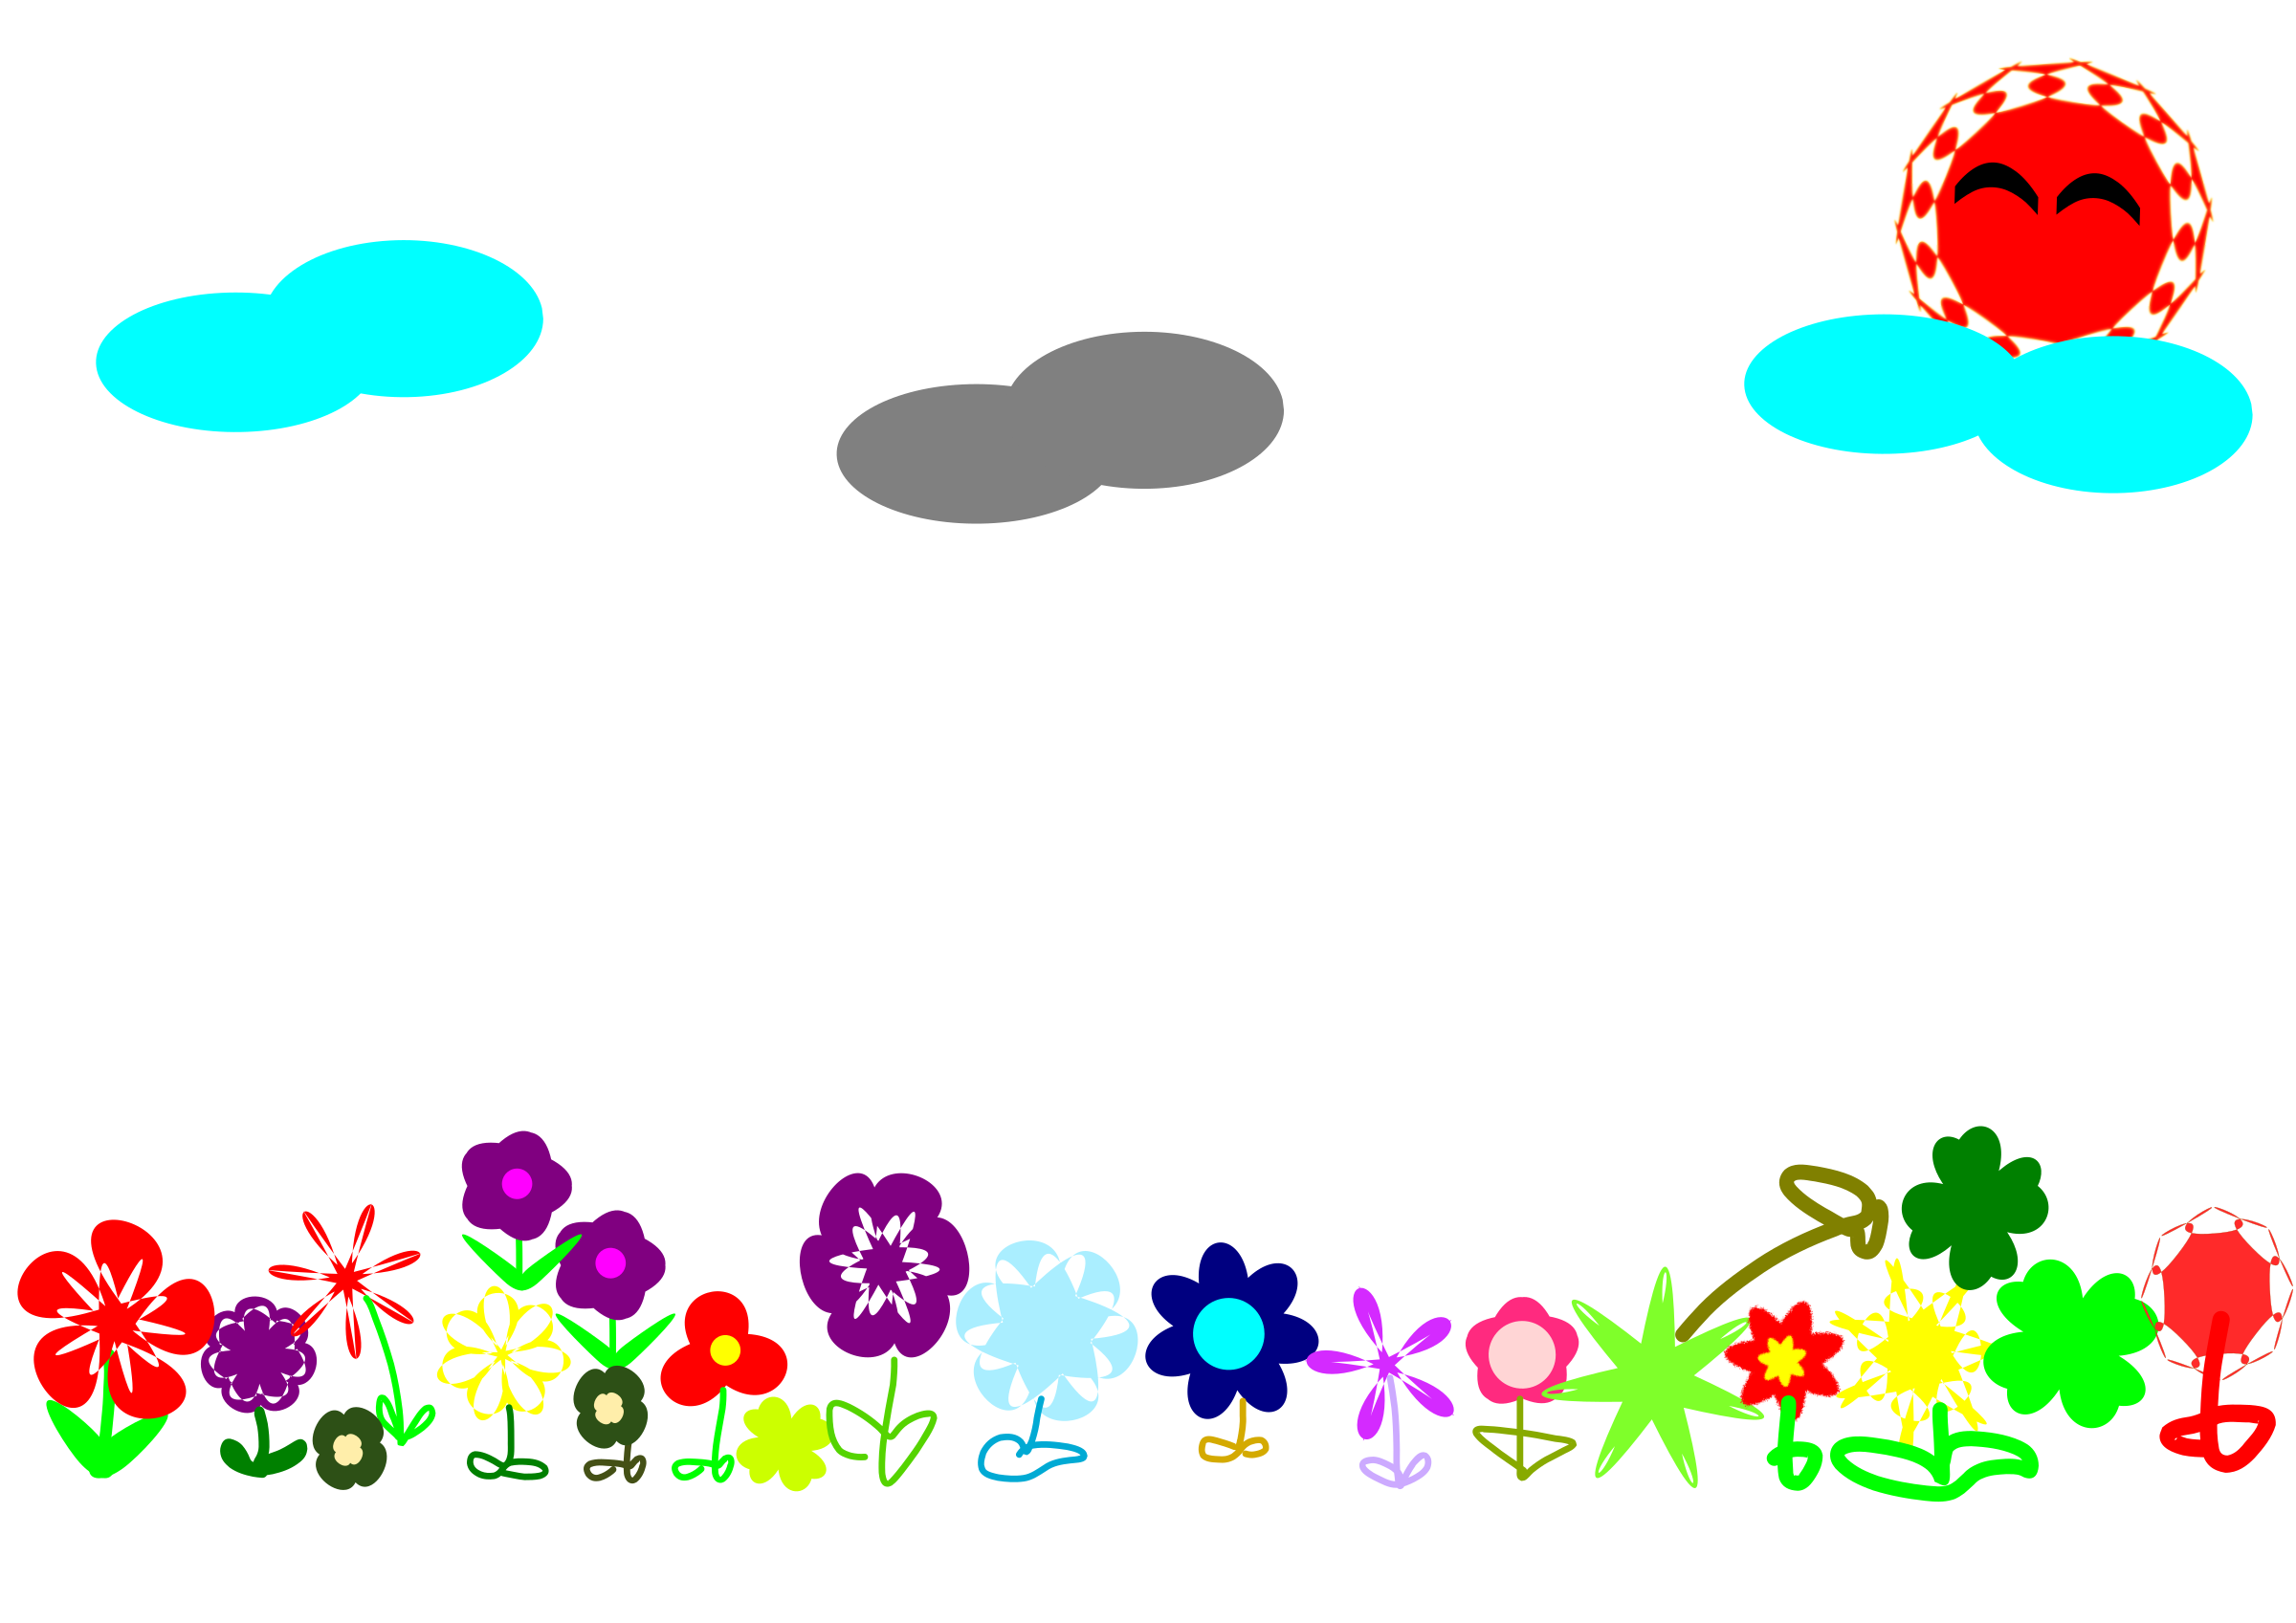 Flower field clipart picture black and white stock Clipart - flower field picture black and white stock